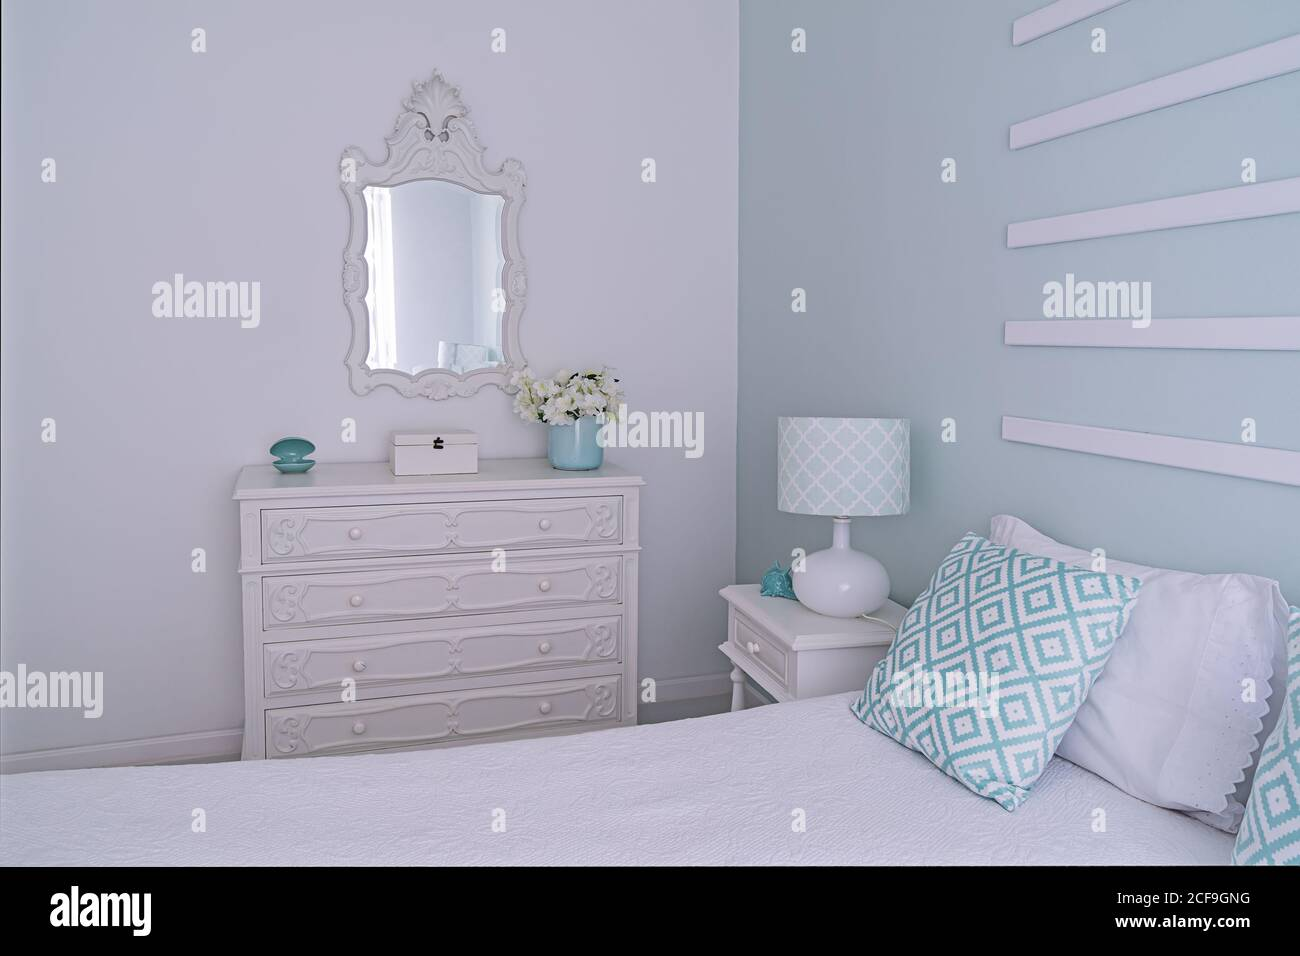 Shabby Chic Style Mint Pastel Bedroom Cozy Bright And Light Bedroom With Decor Stock Photo Alamy